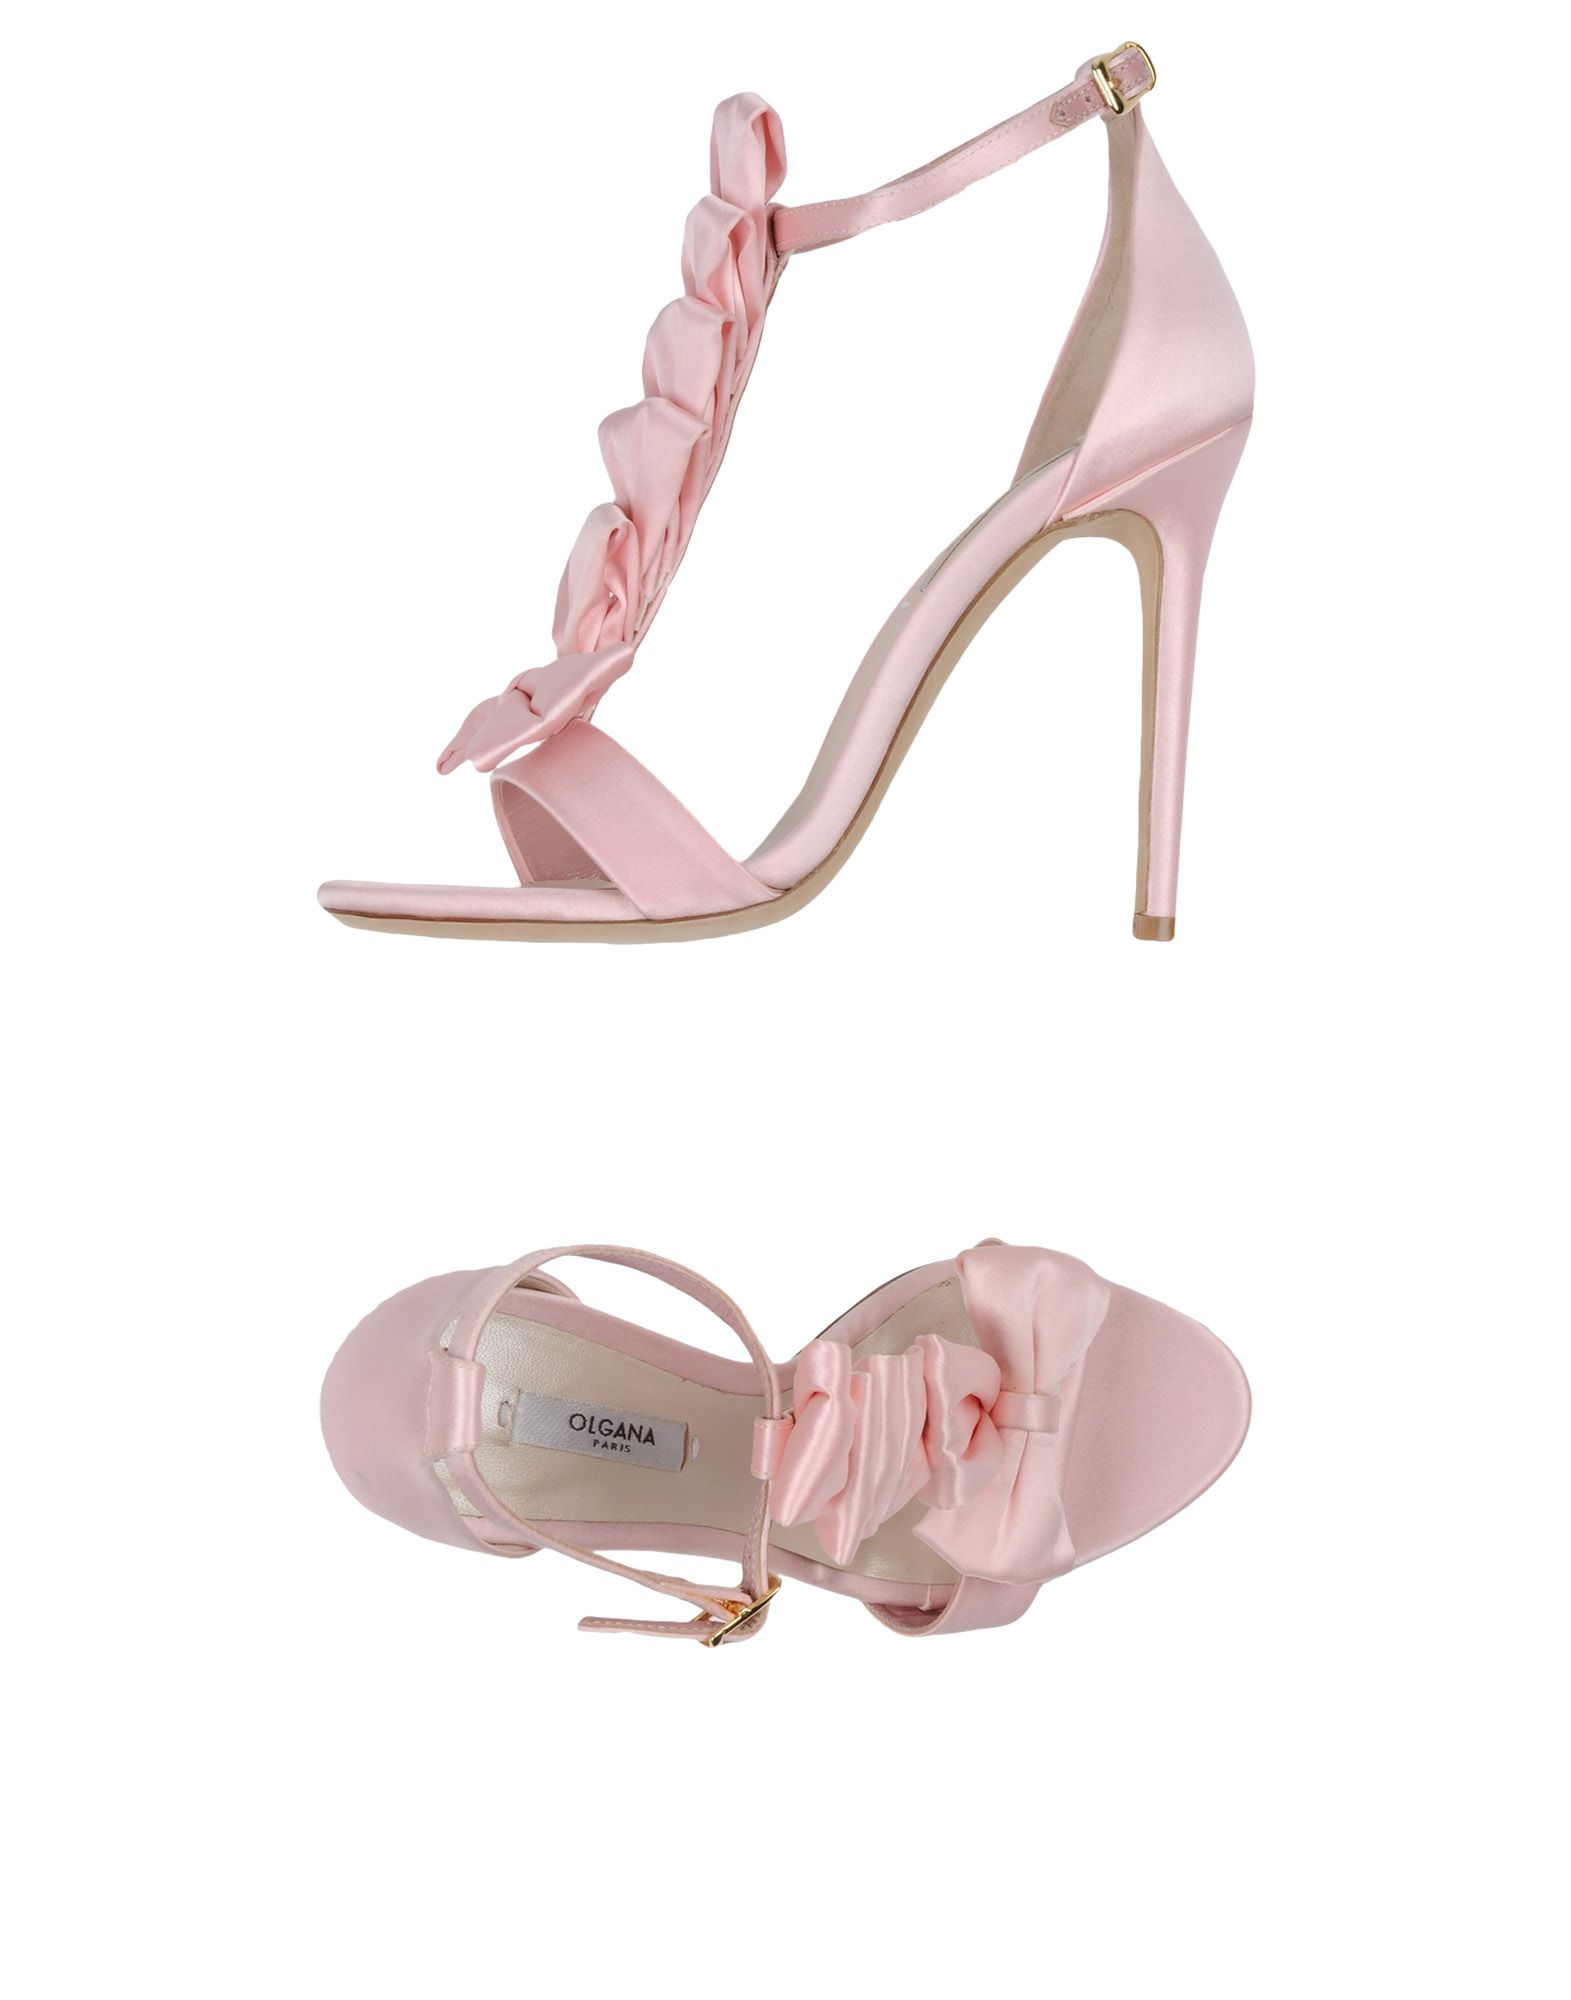 OLGANA PARIS Sandals in Pink